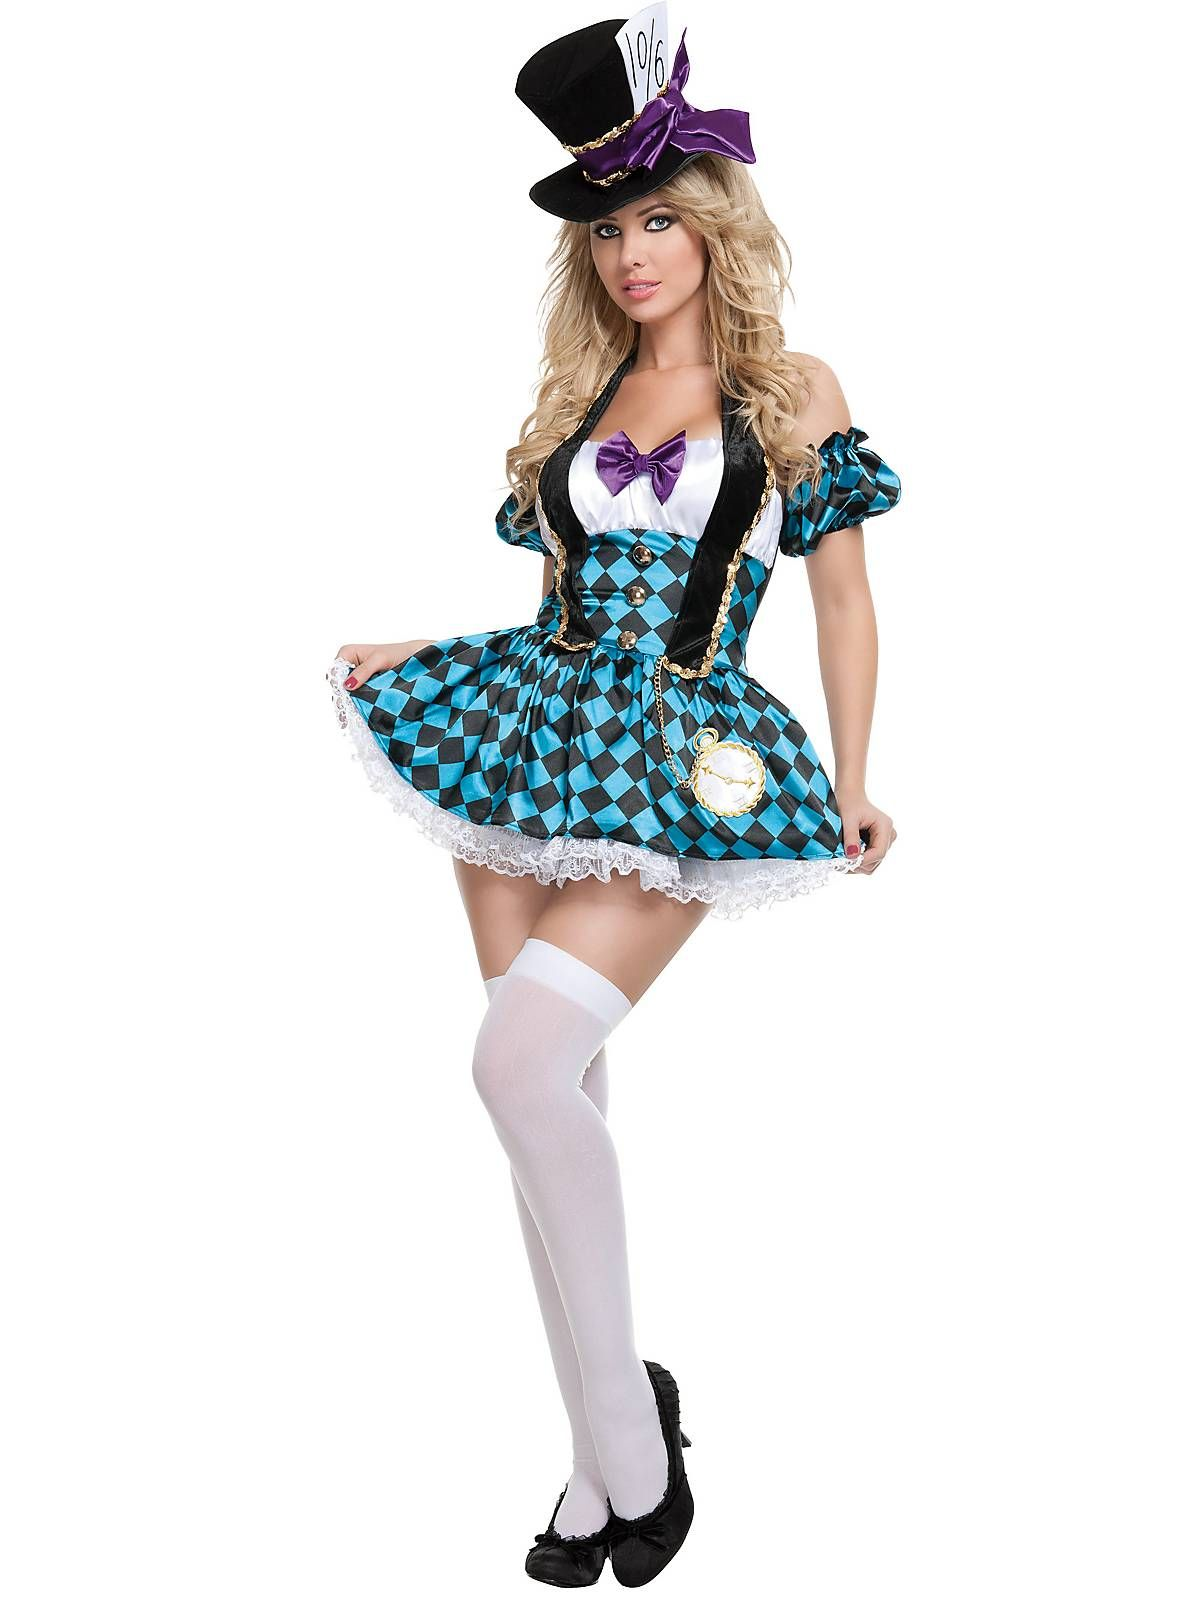 Women's Sexy Mad Hatter Costume | Fairytale costume, Costumes and ...